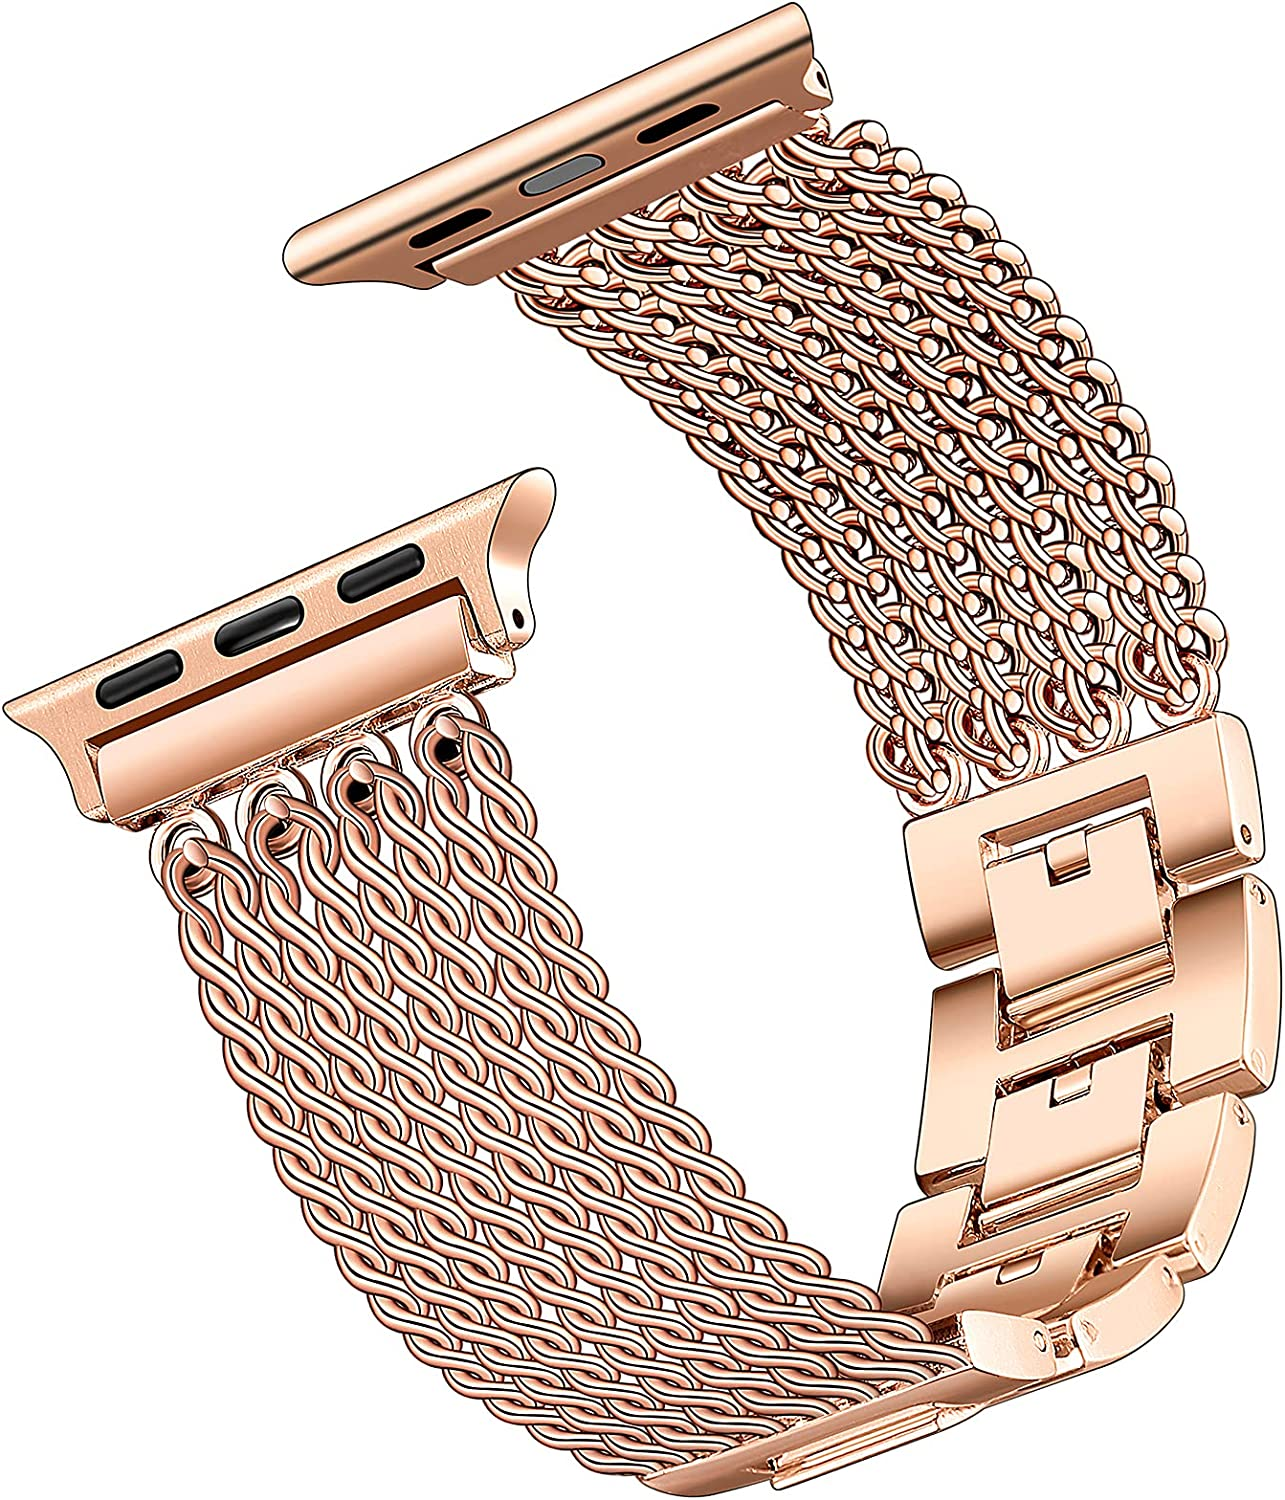 DiBoLang Compatible with Apple Watch Band 38/40/42/44mm Women Girls, Fashion Dressy Style Stainless Steel Bracelet Strap with Tassel Metal Chain for Iwatch Serices 6 5 4 3 2 1 SE All Models(38mm/40mm)